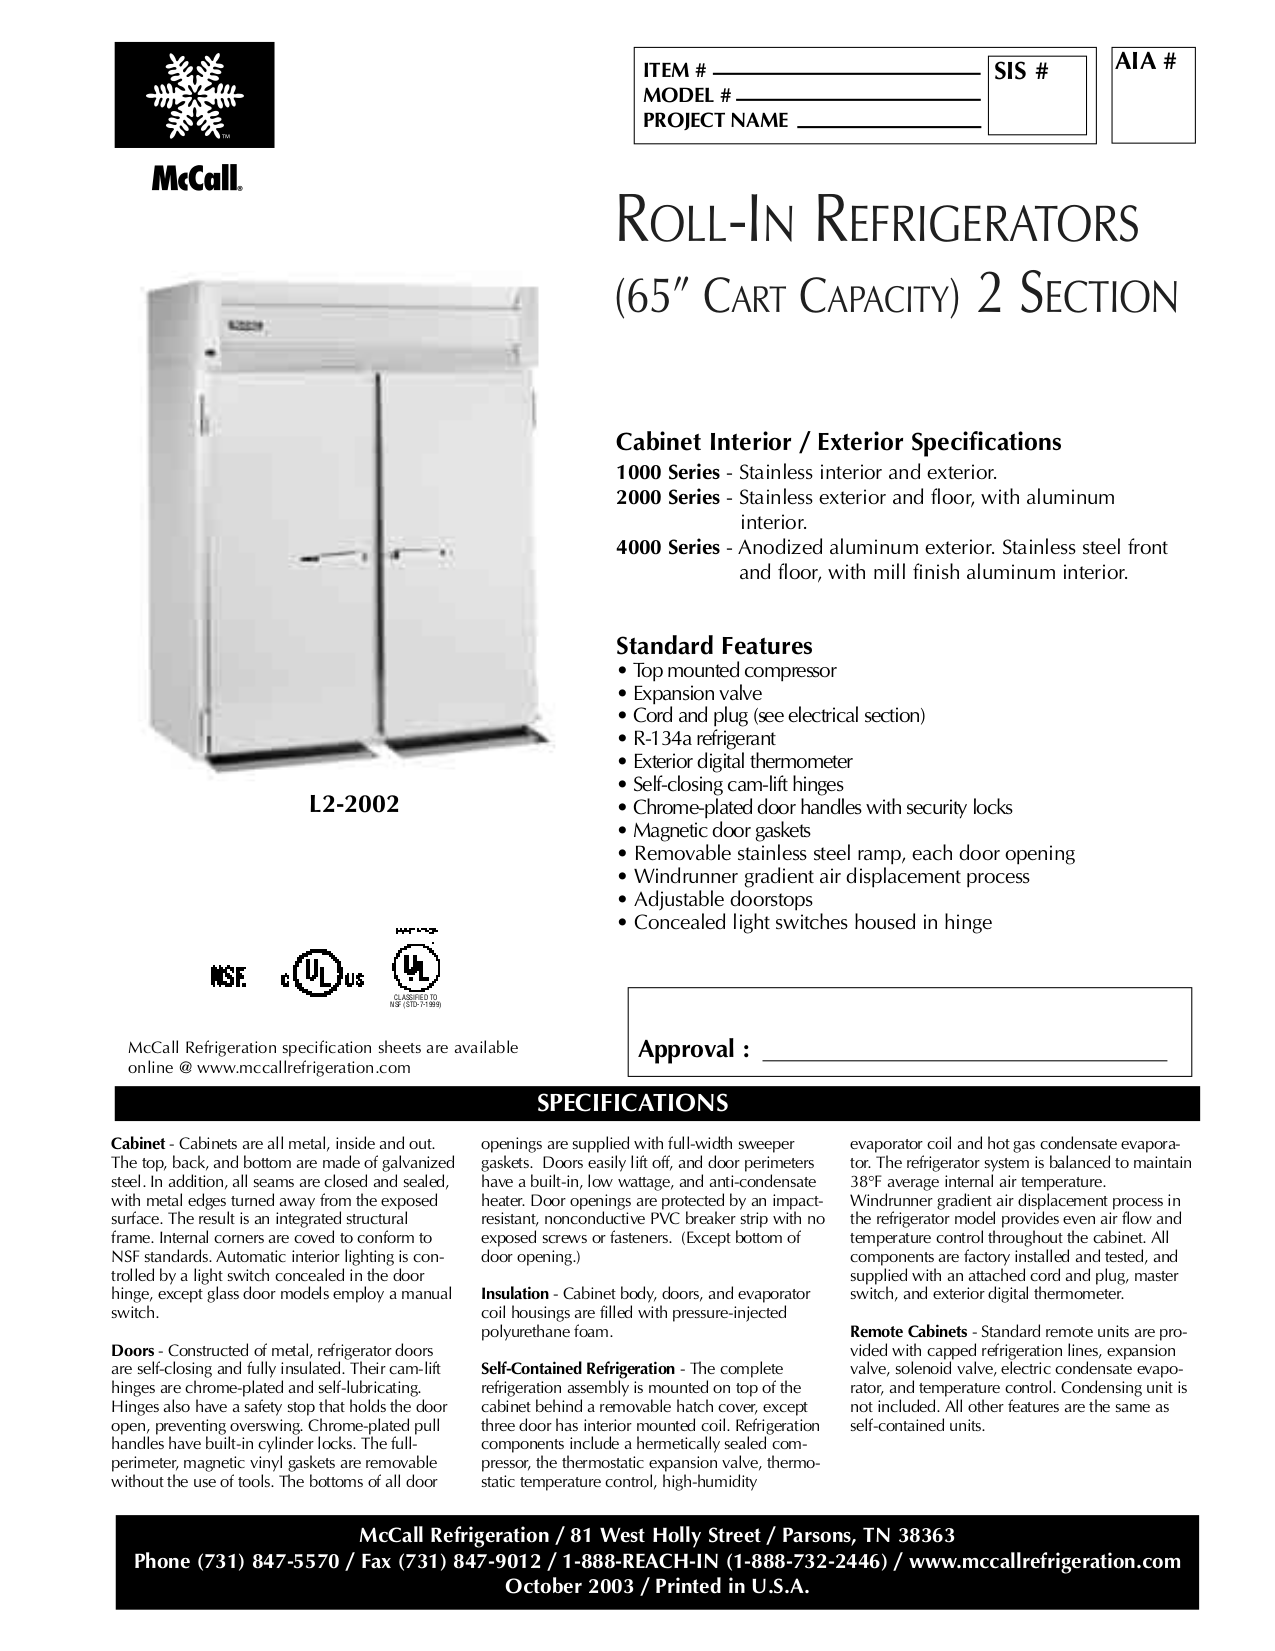 pdf for McCall Refrigerator L2-2002 manual